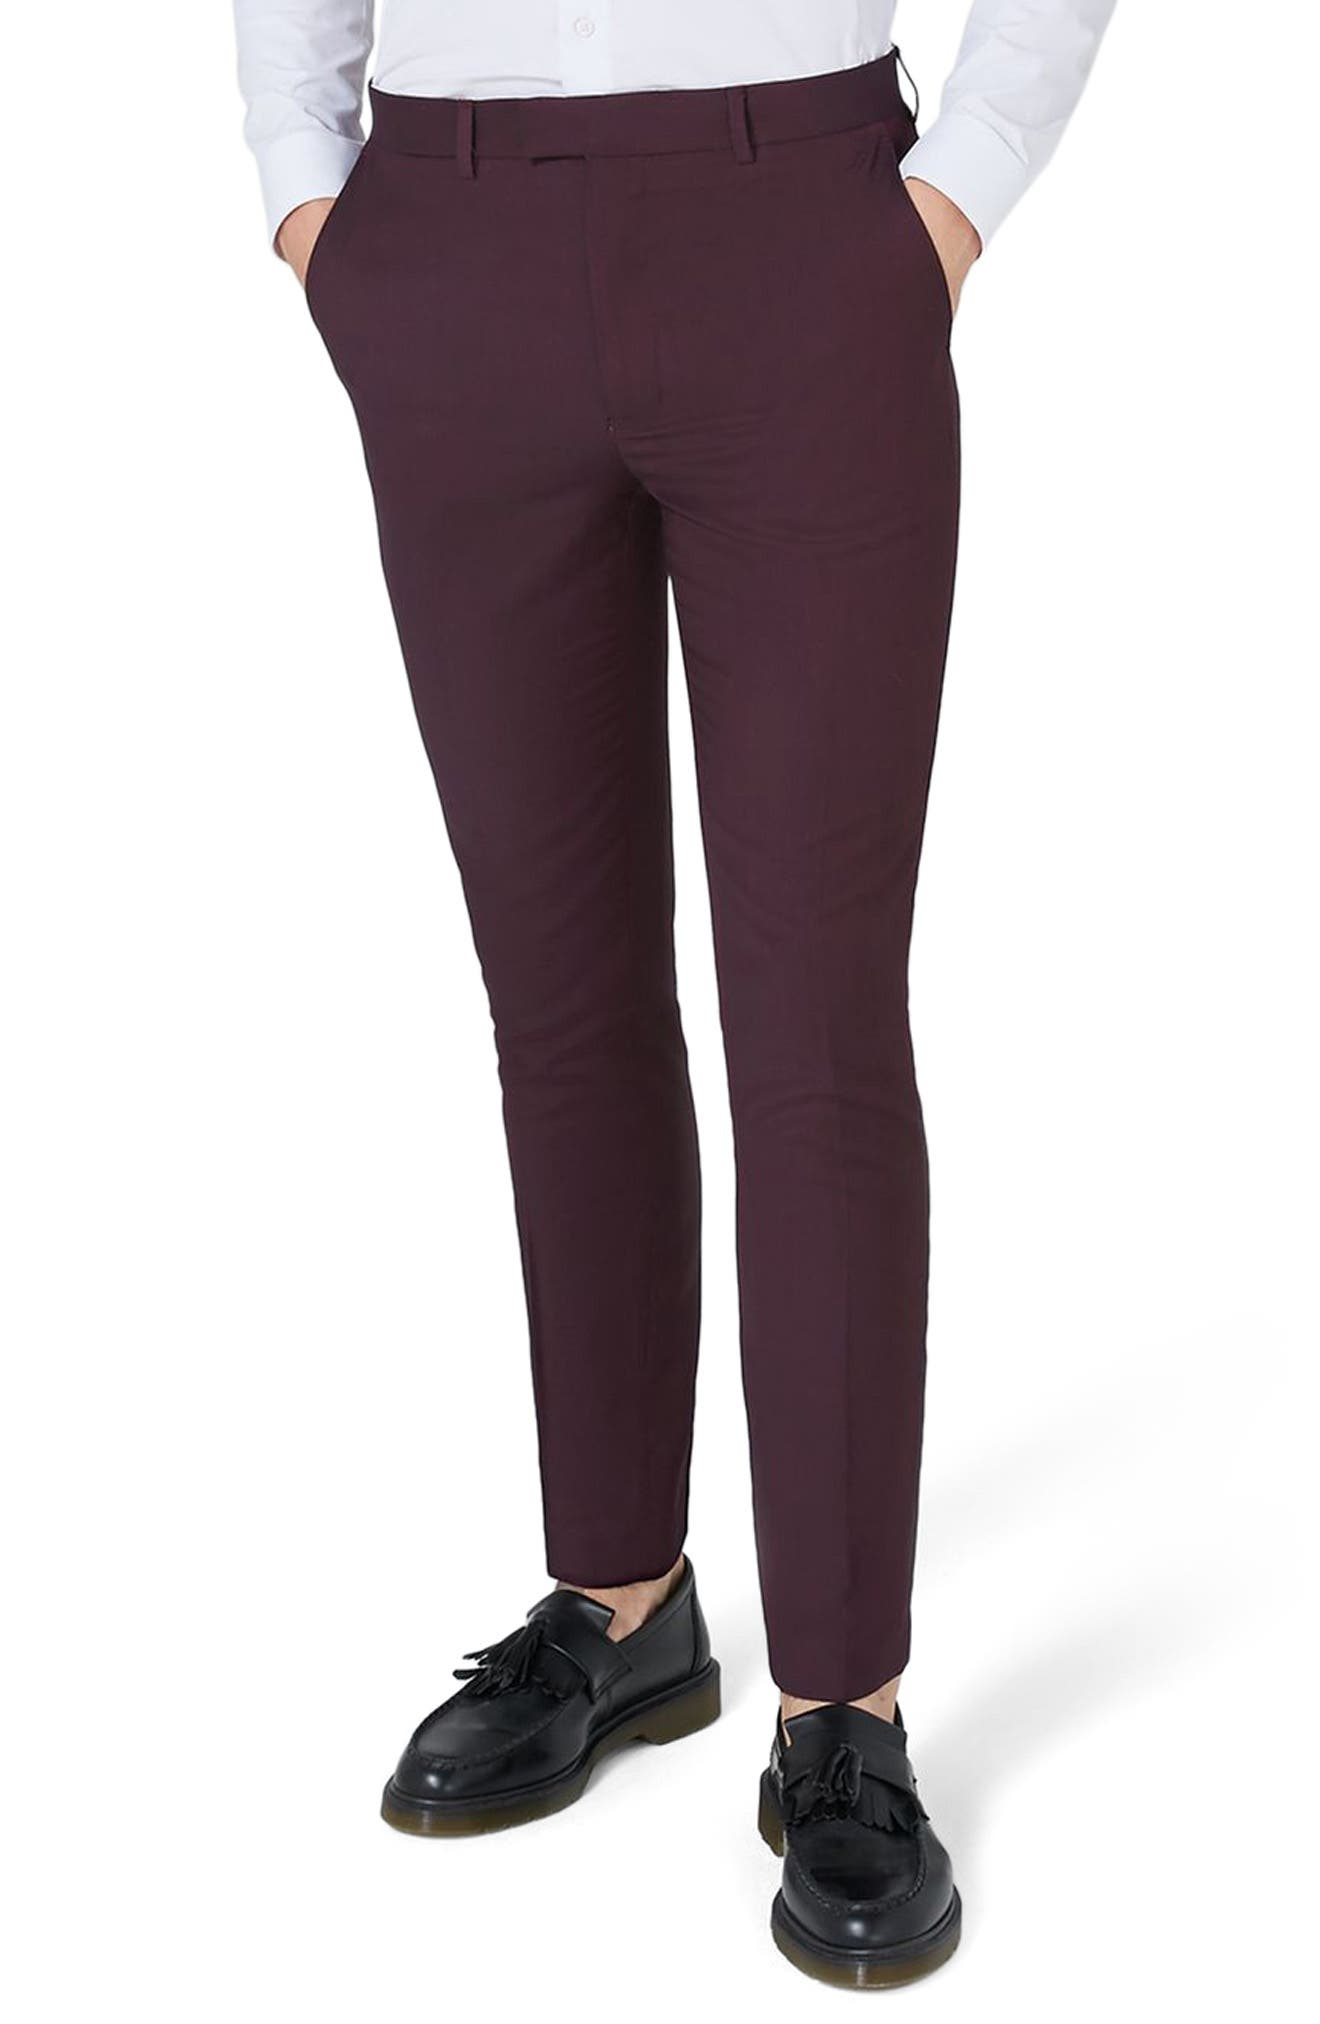 Topman Skinny Fit Plum Suit Trousers